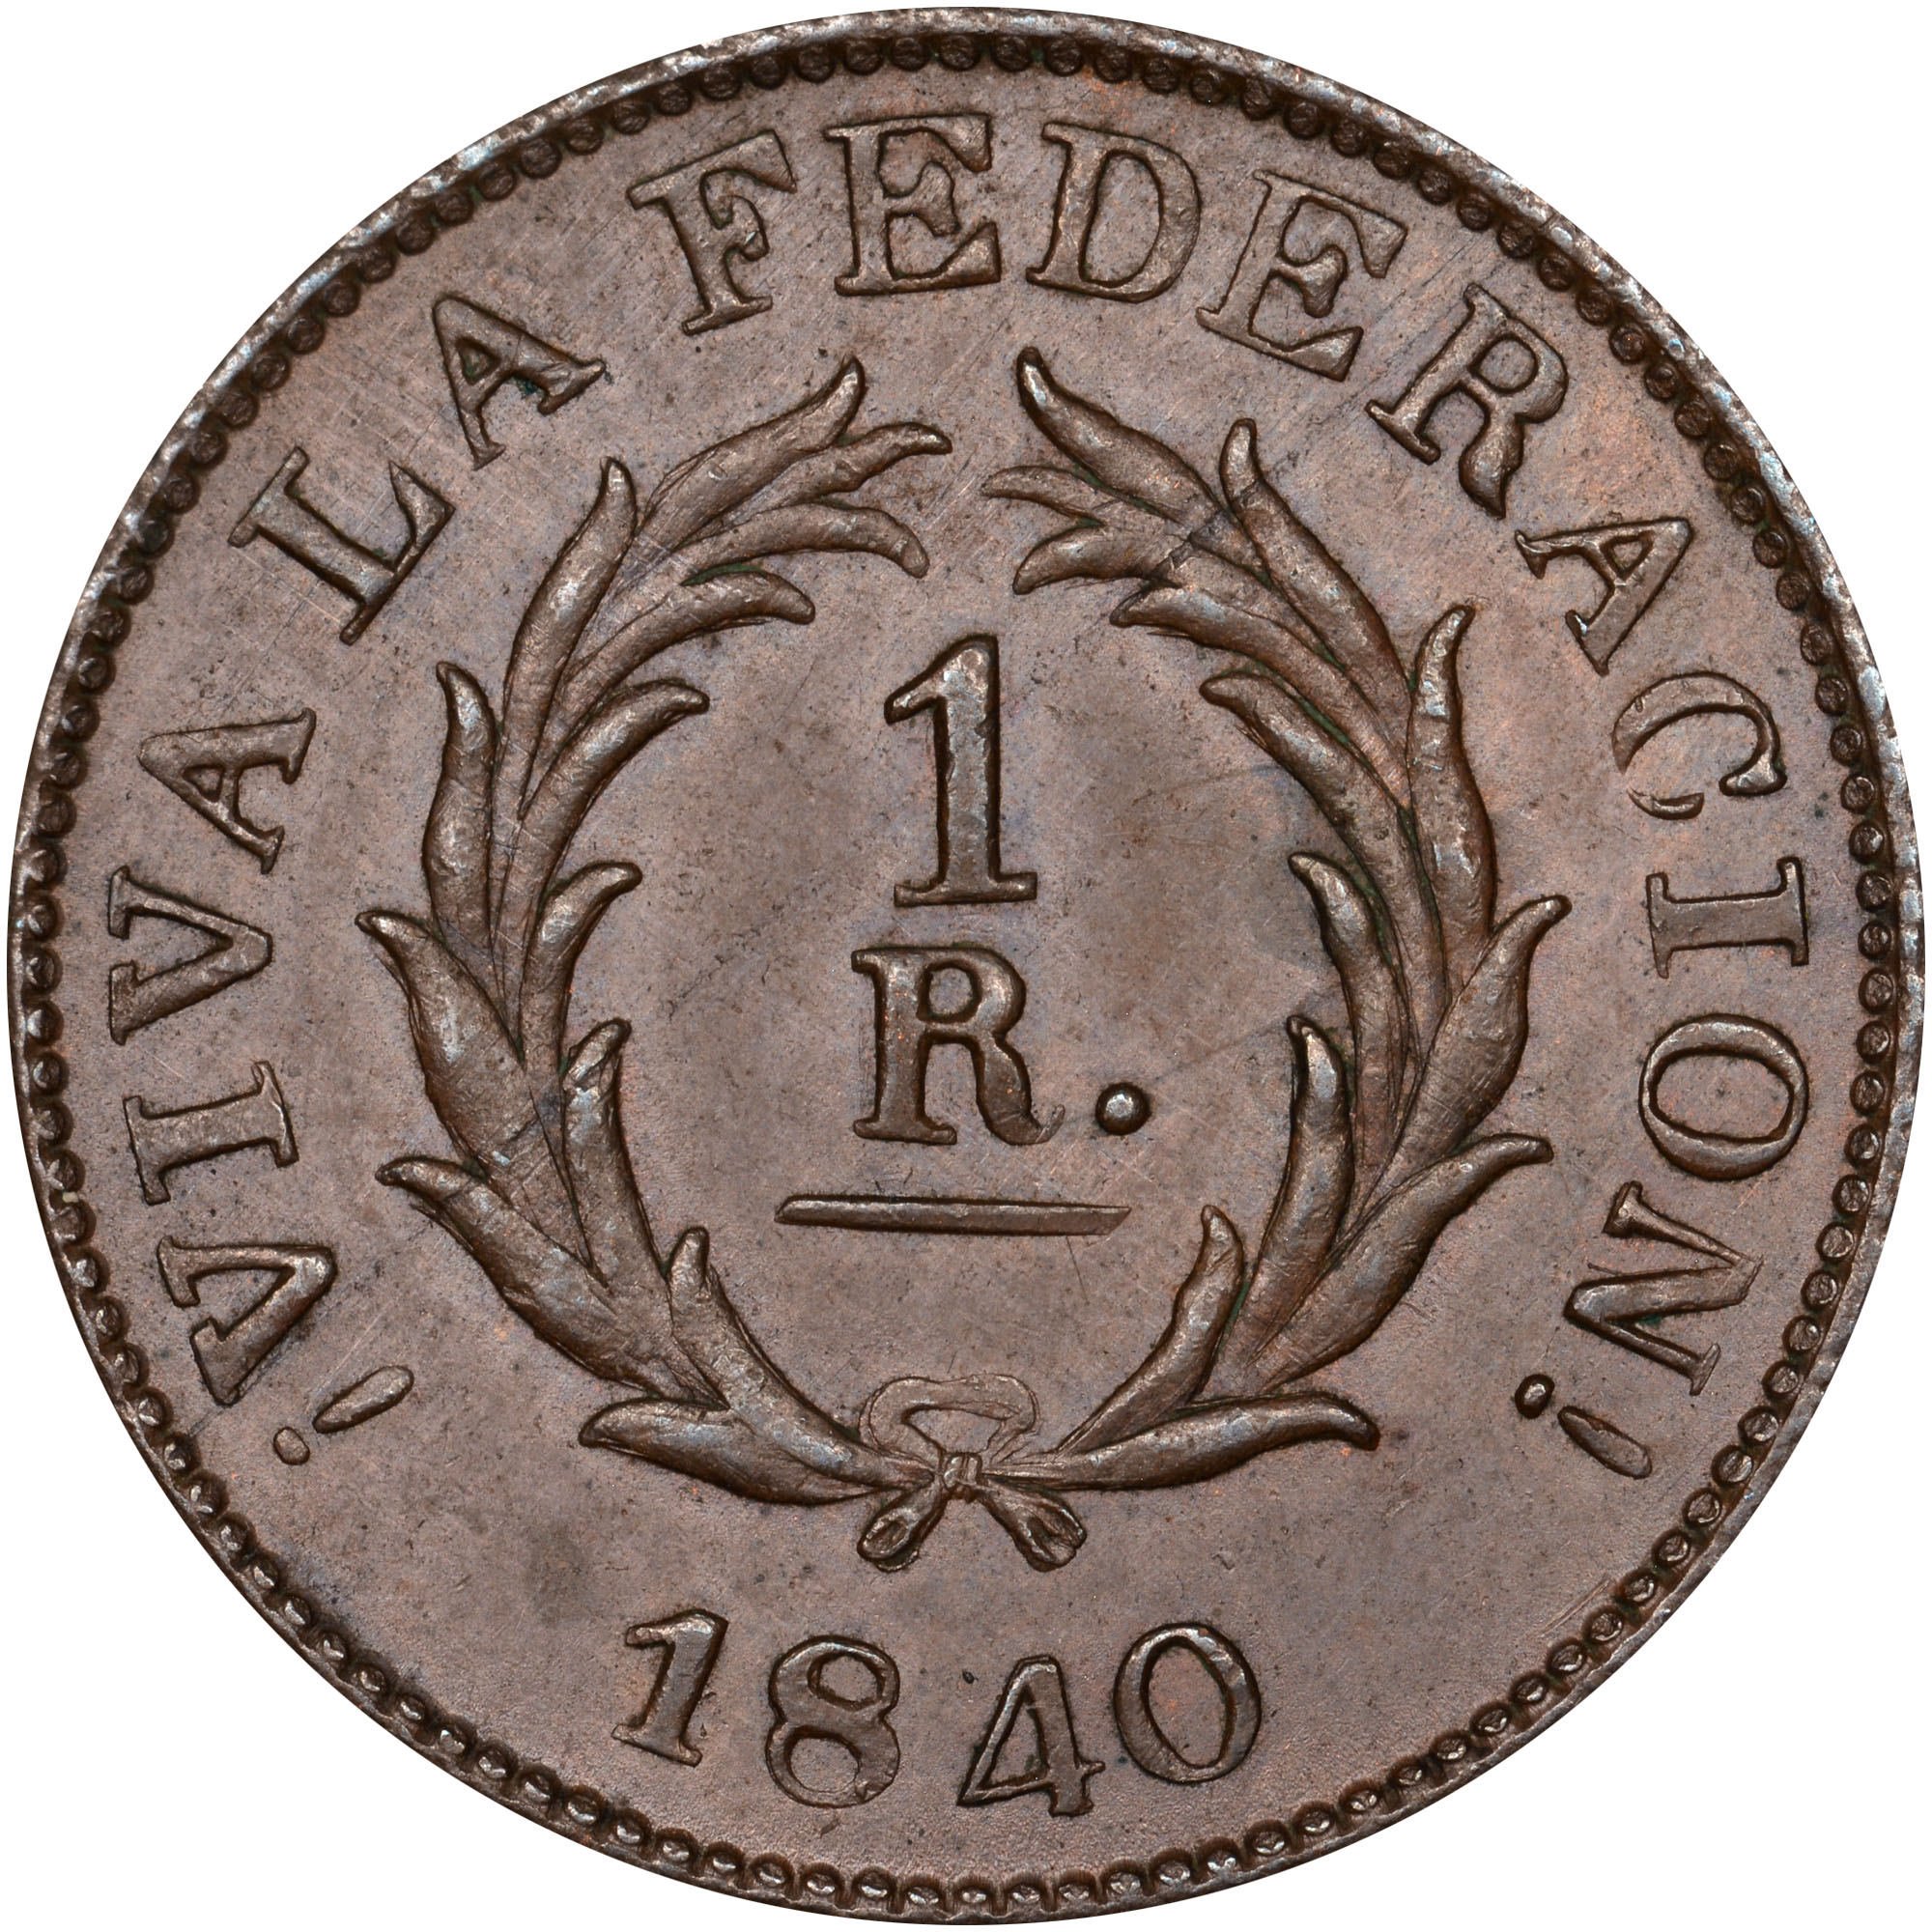 1840 Argentina BUENOS AIRES Real obverse